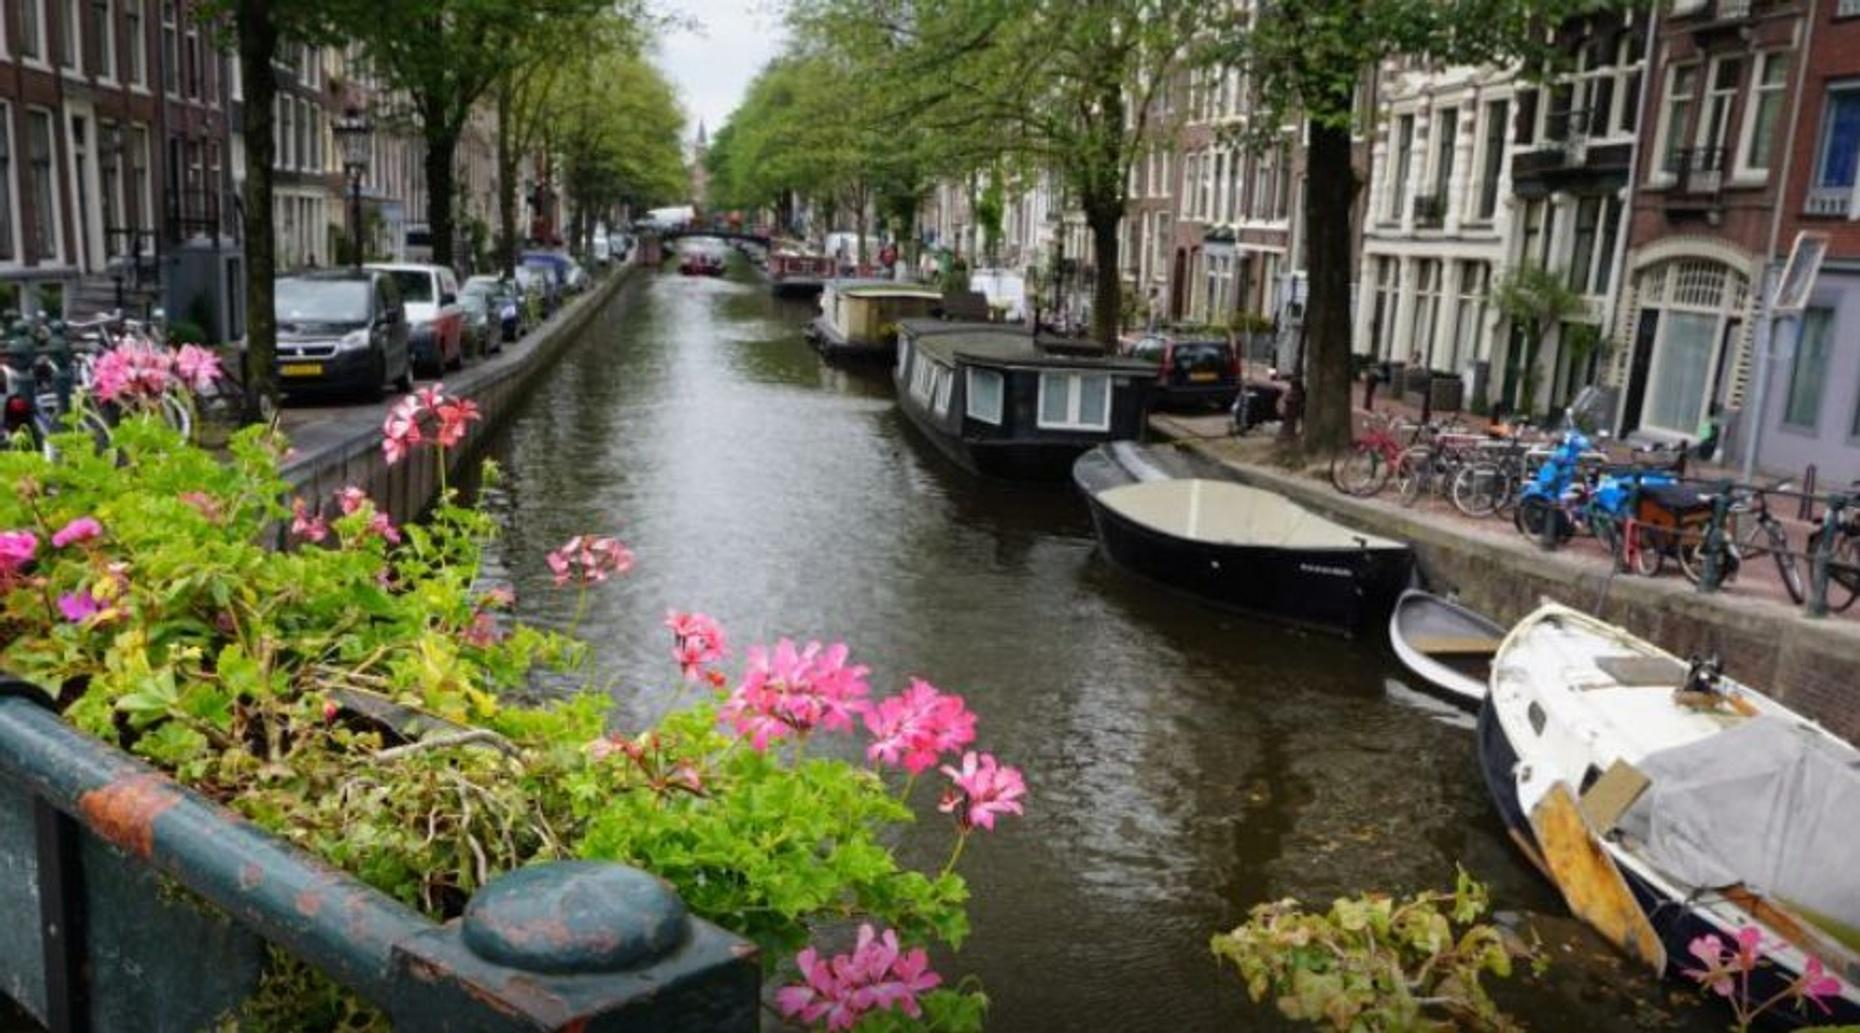 4-Hour Amsterdam Food & Canals Tour